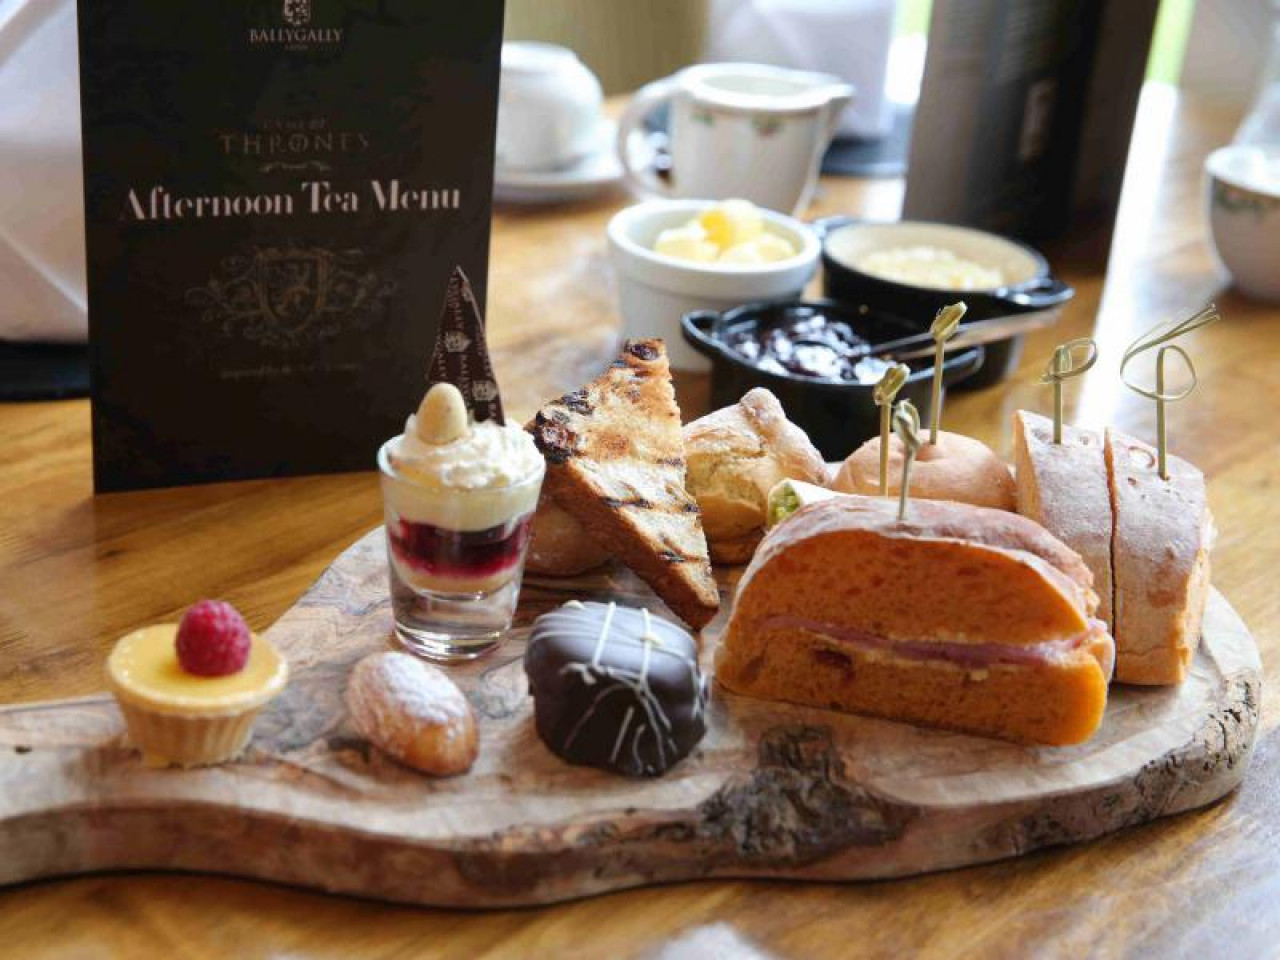 Our Game of Thrones-inspired afternoon tea consisted of treats like Hodor's Pulled Pork Brioche and Sansa Stark's Lemon Cake. An important ethos of the hotel is to use local food and promote local businesses.